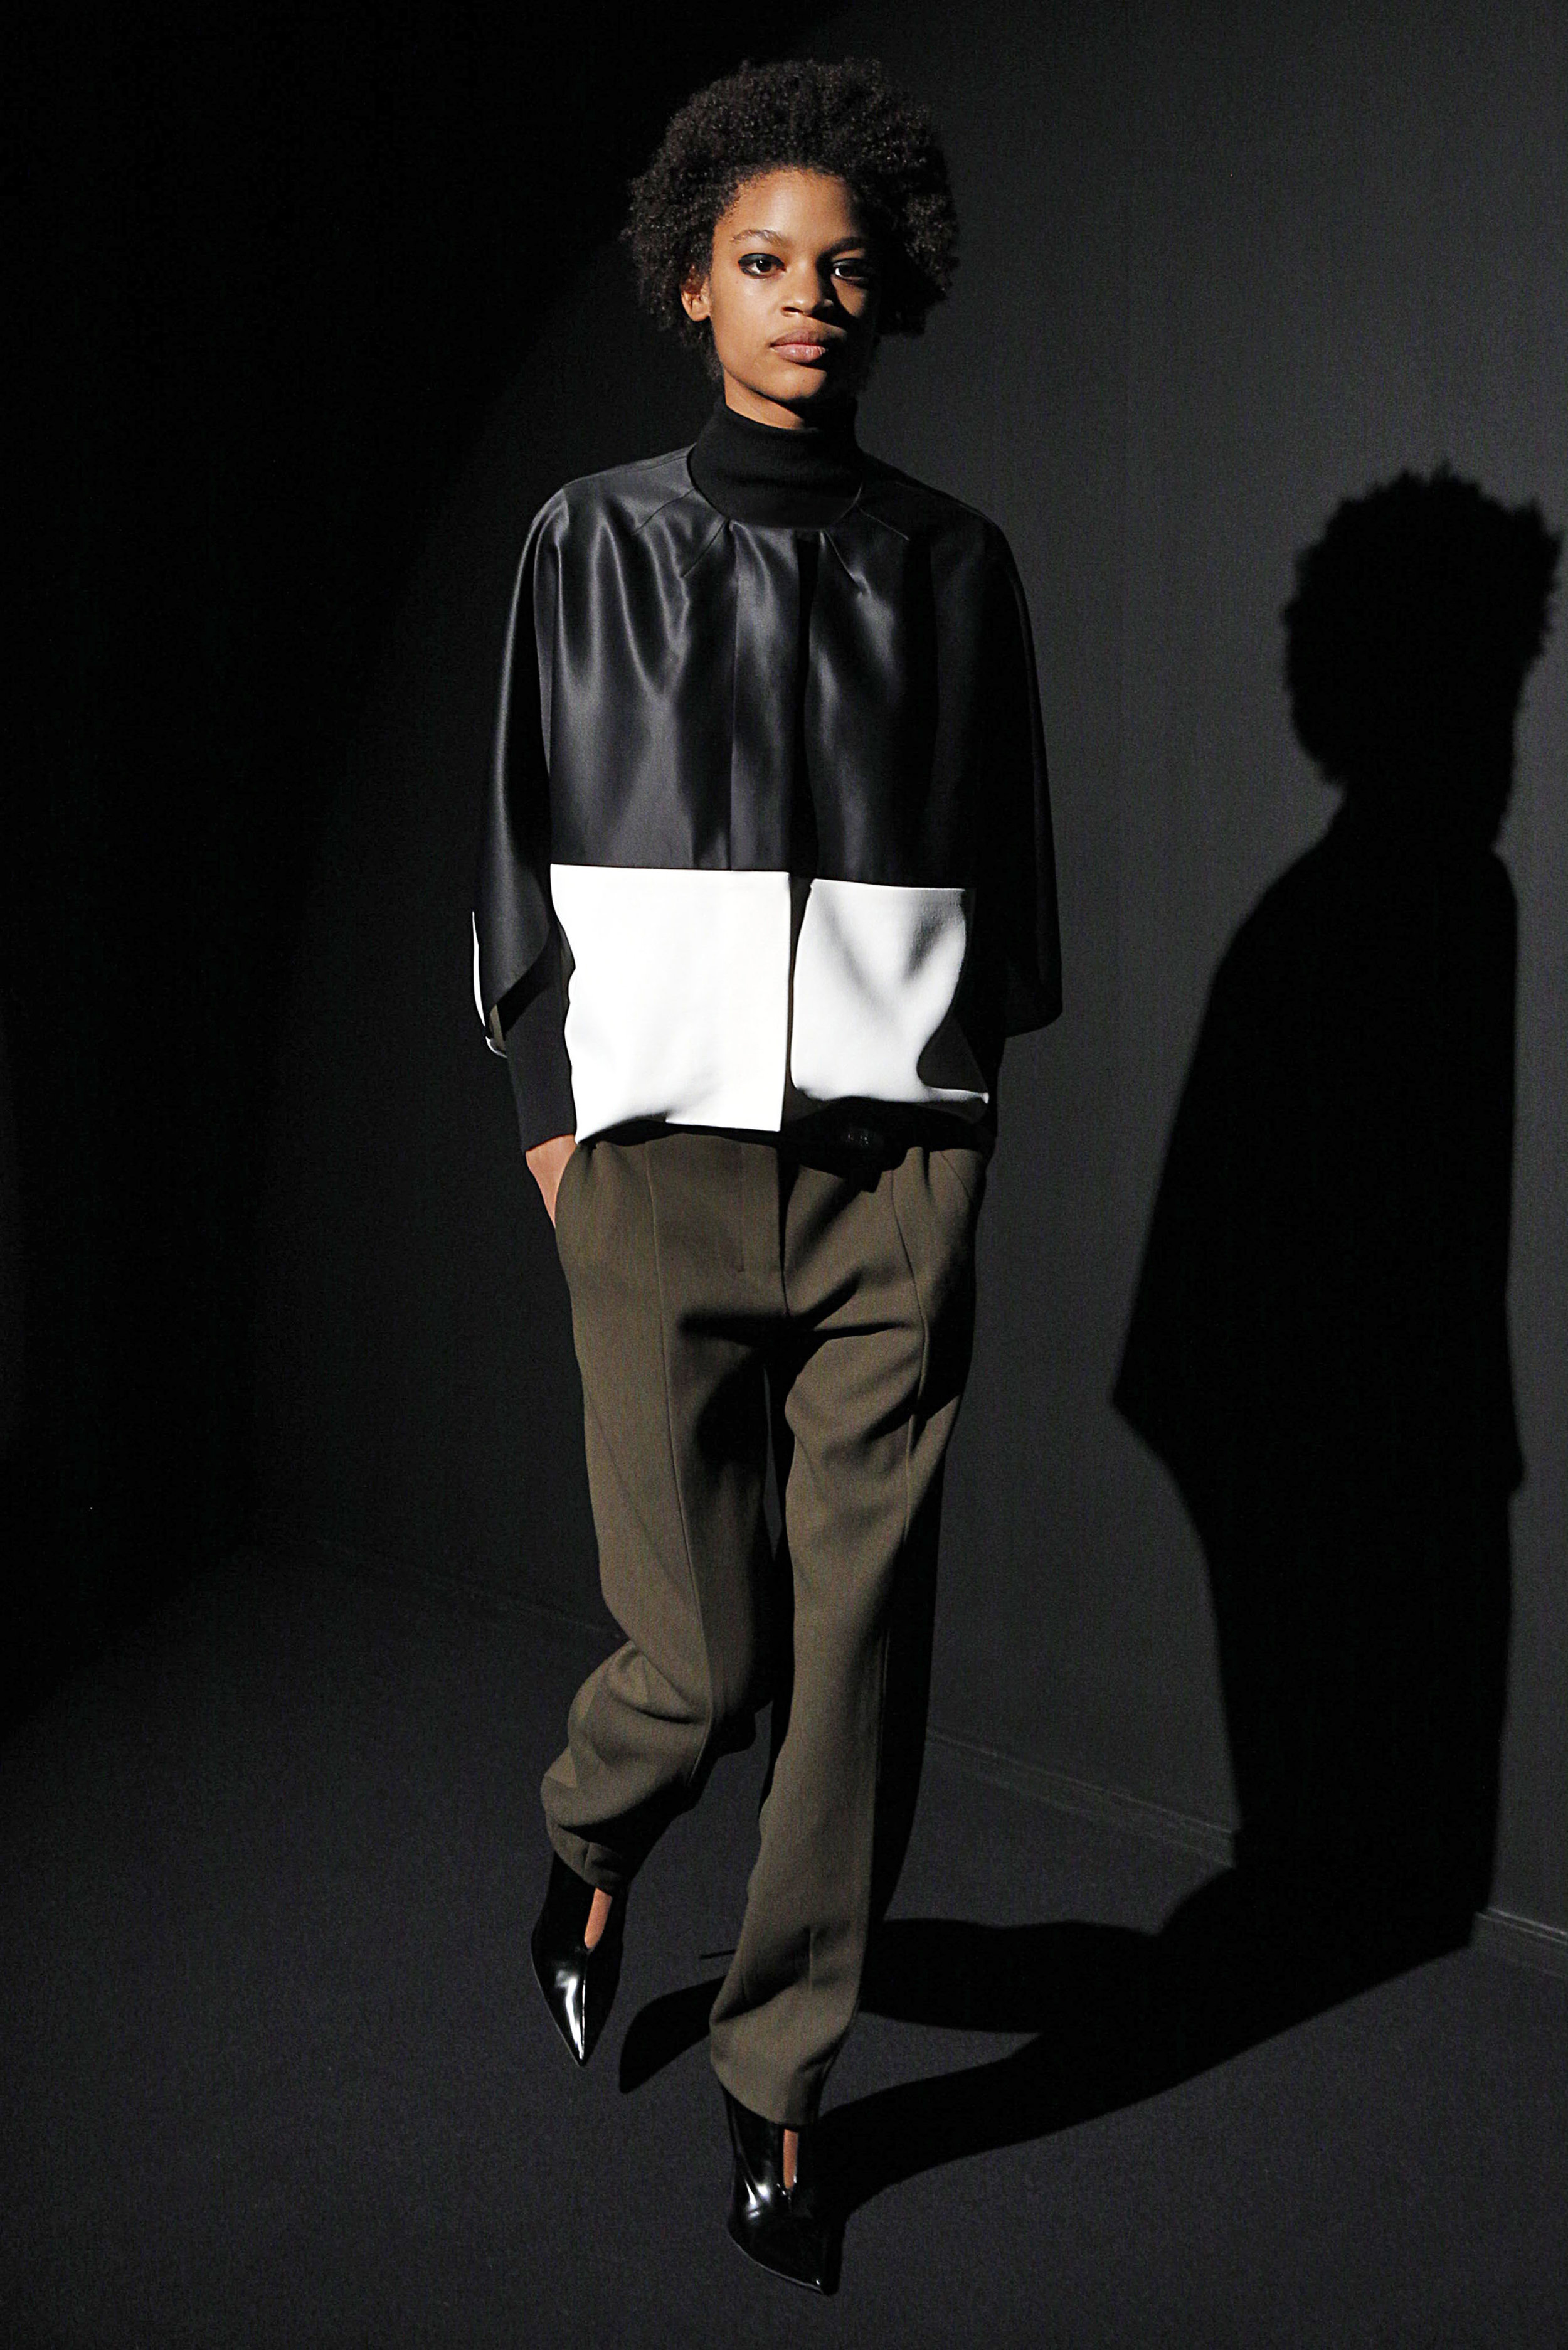 Look 1 Black satin/white crepe top over black knit turtleneck top with moss wool barathea pant.